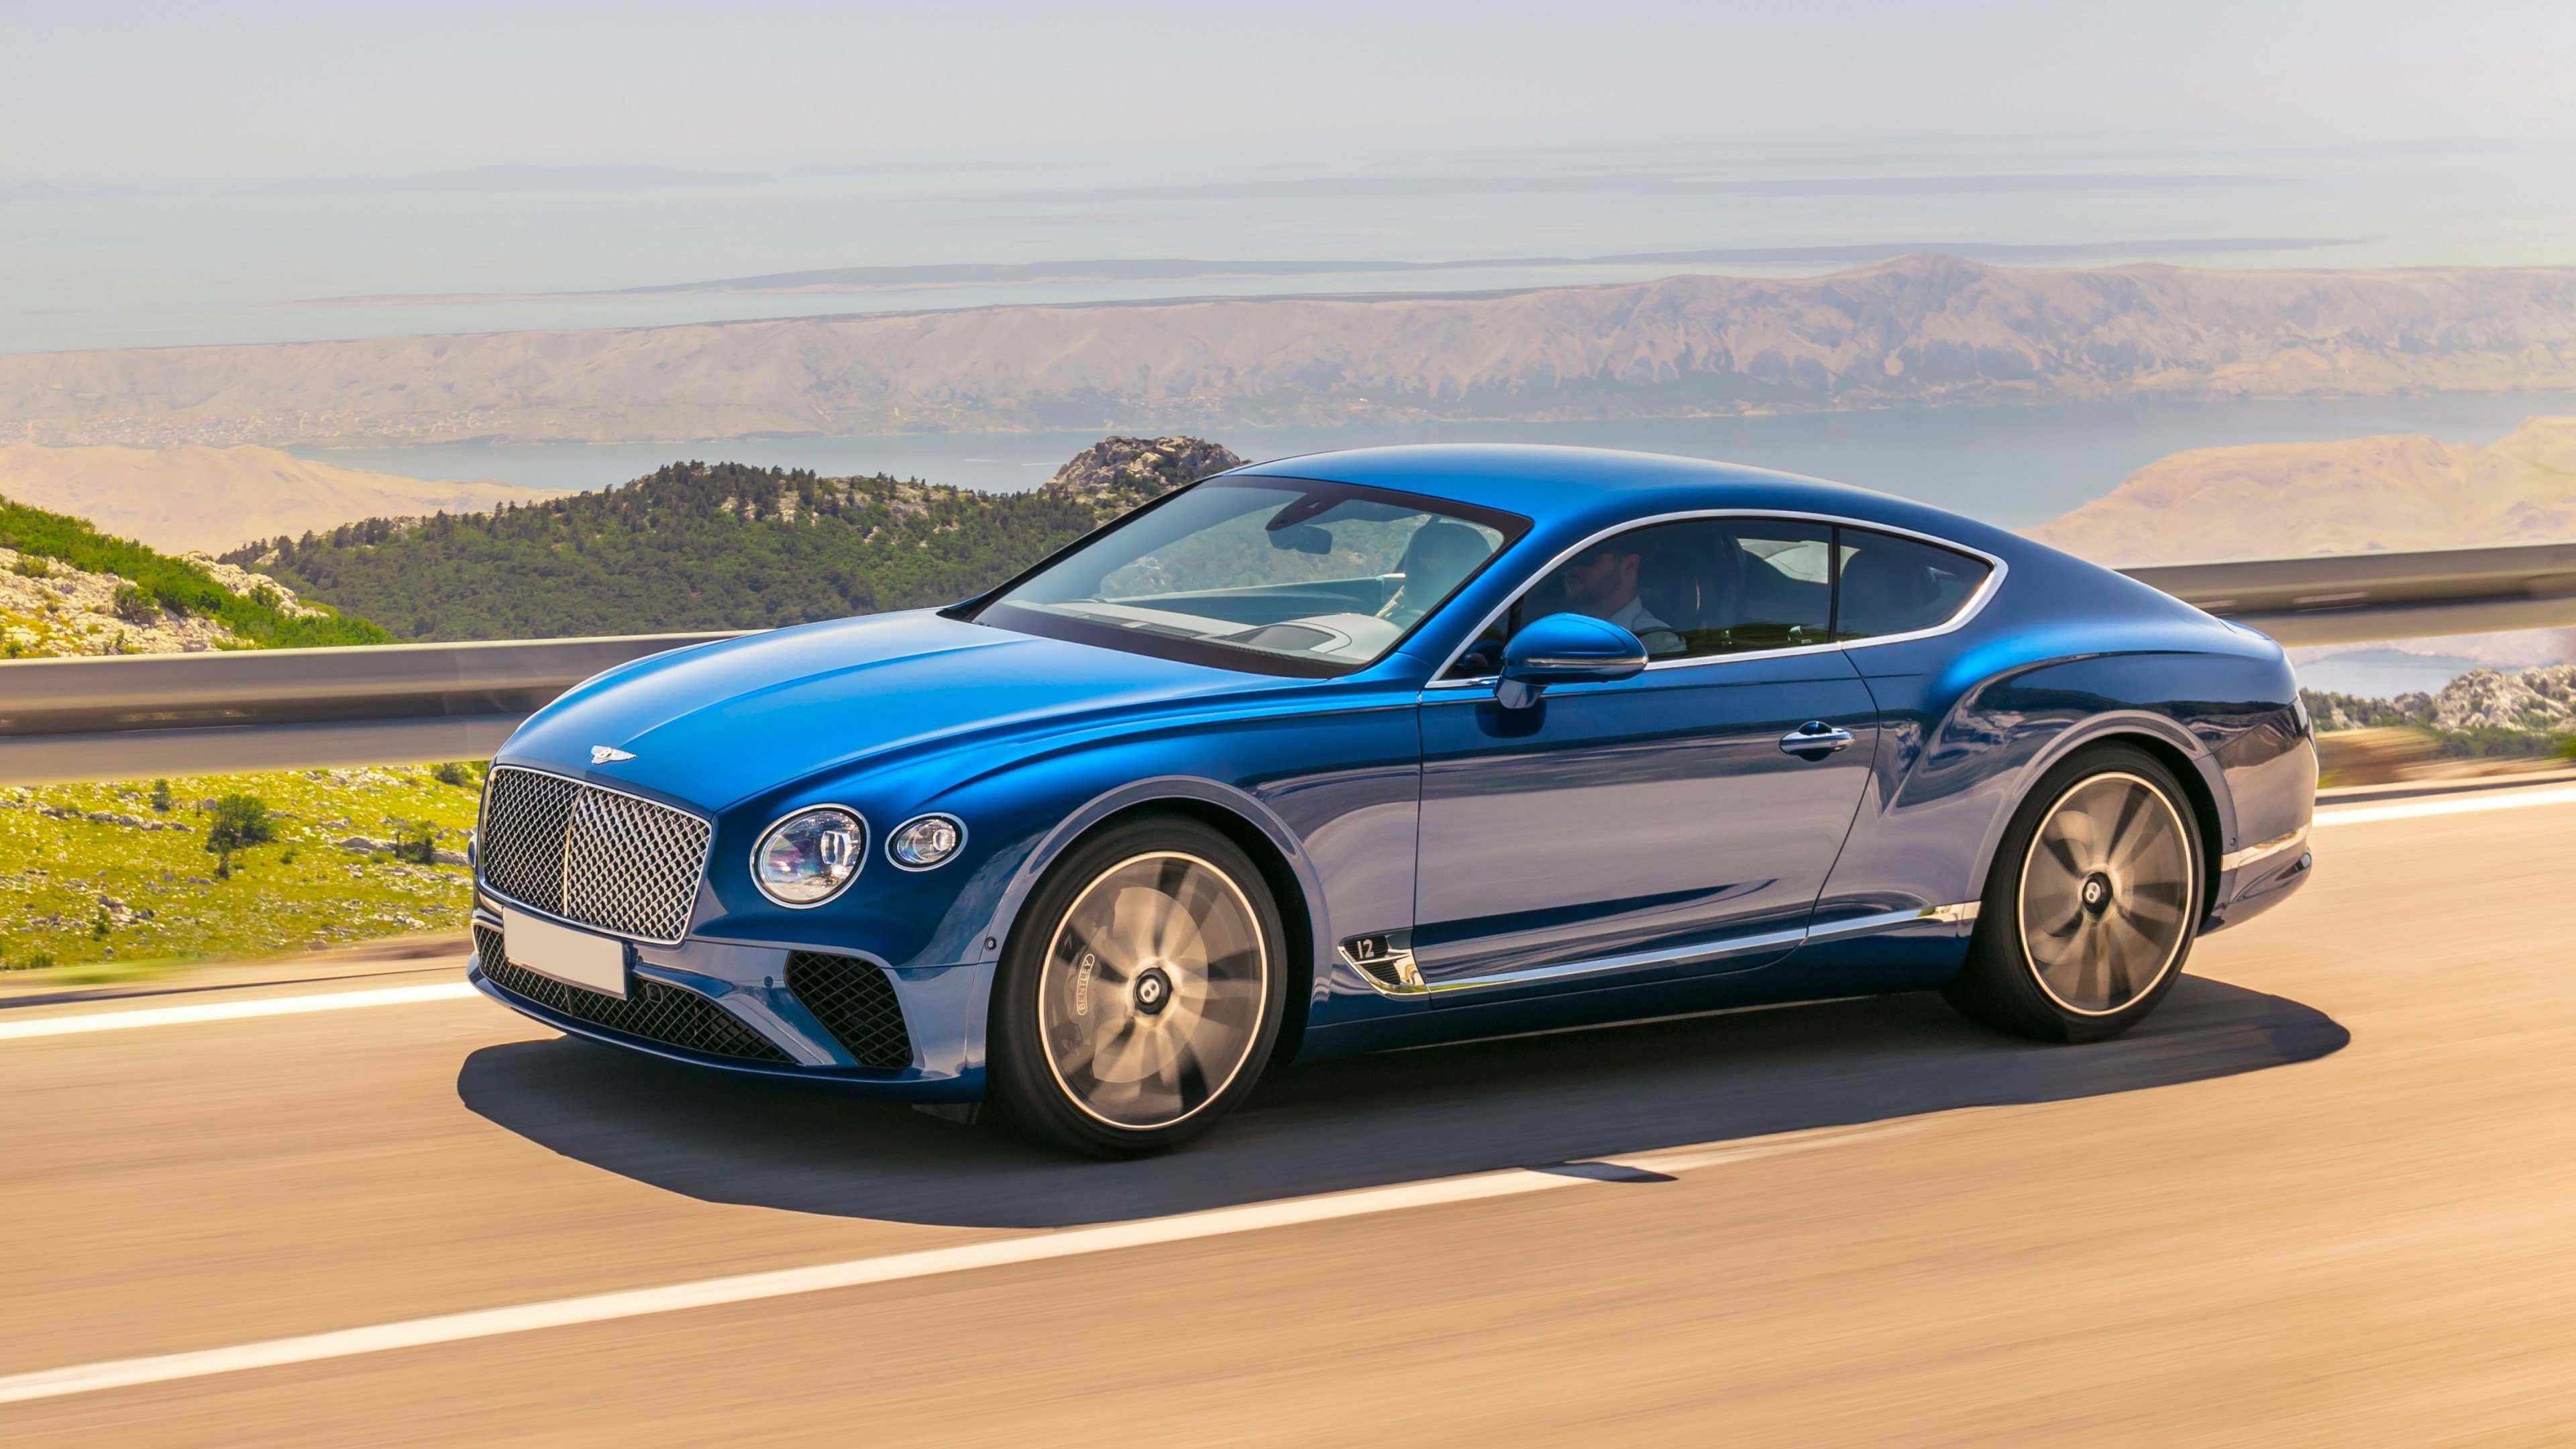 Latest Wallpaper Bentley Continental Gt 2019 Cars 5K Cars Free Download